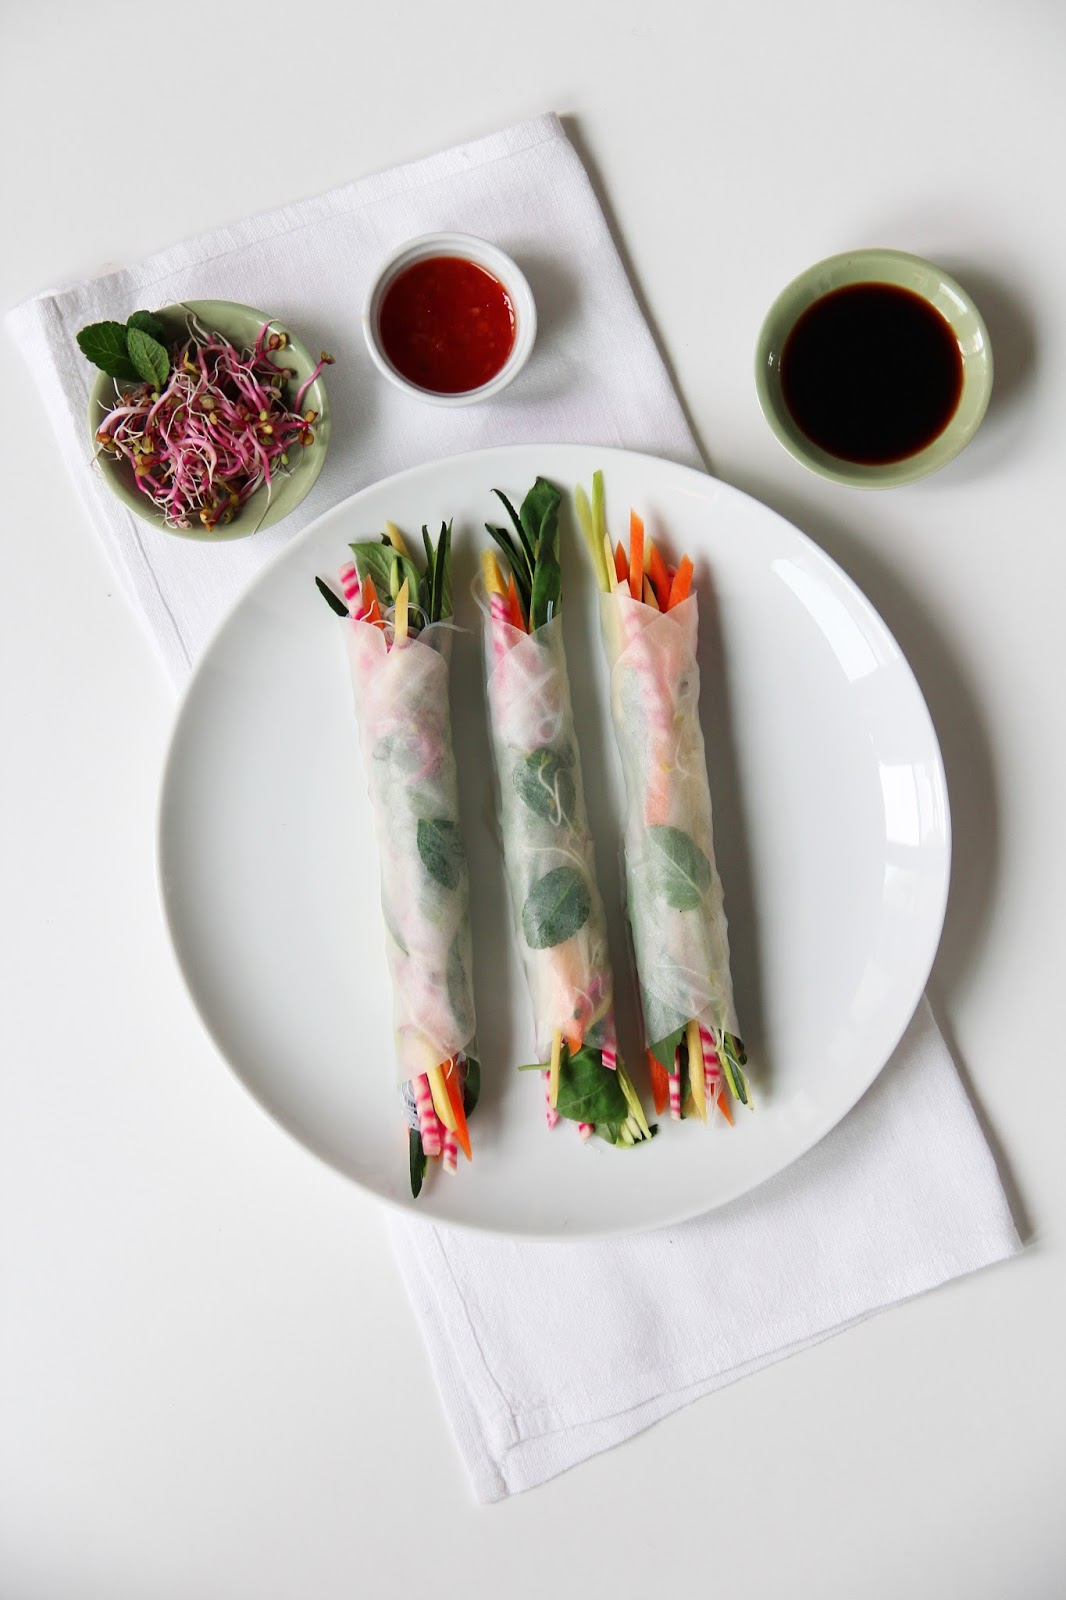 Summer Rolls with Crudités